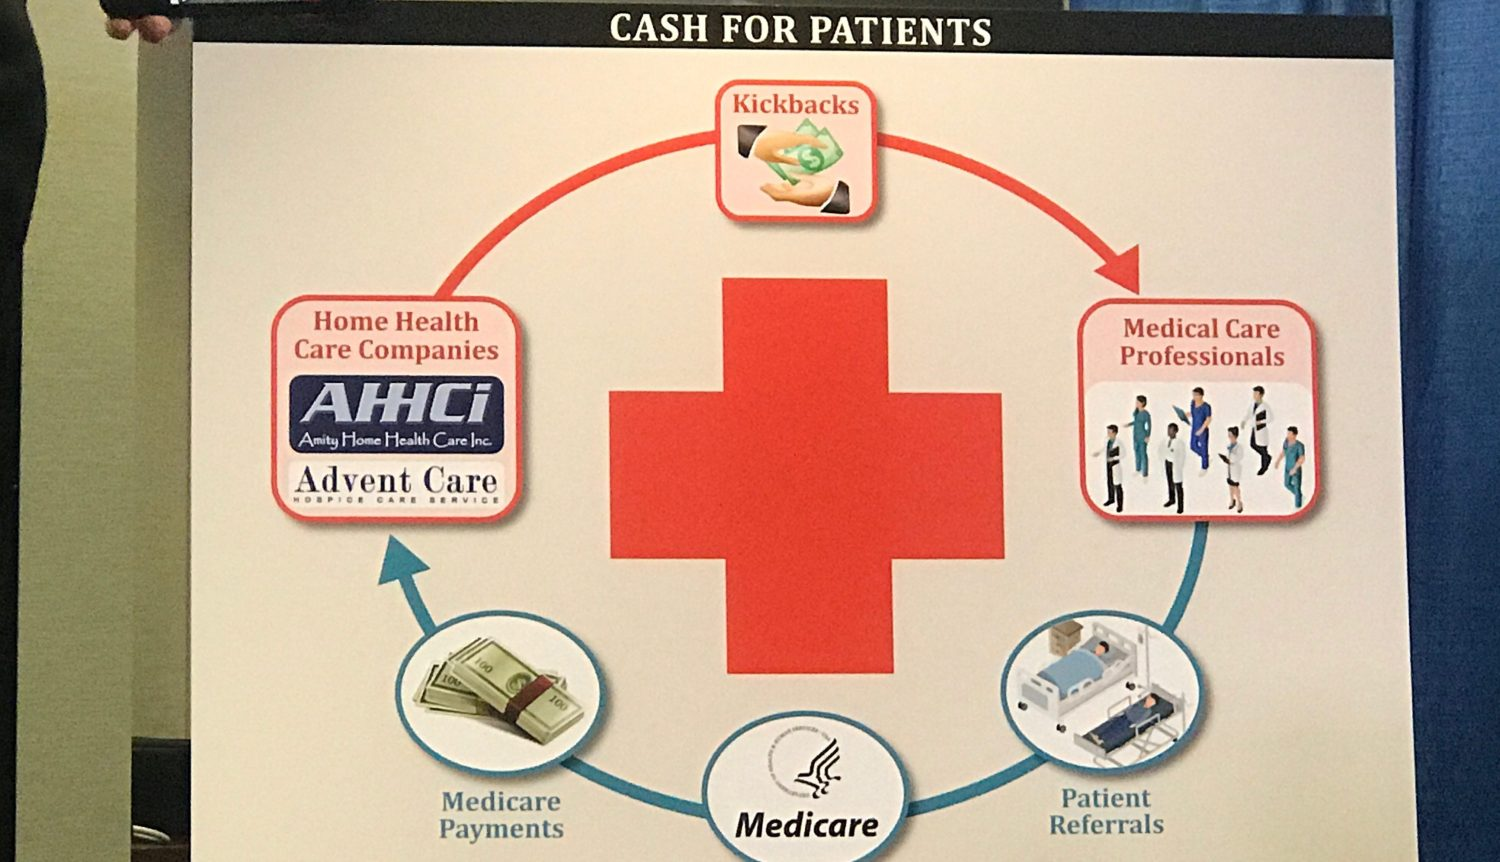 Amity Home Health Fraud Is The Tip of The Medicare Fraud Iceburg